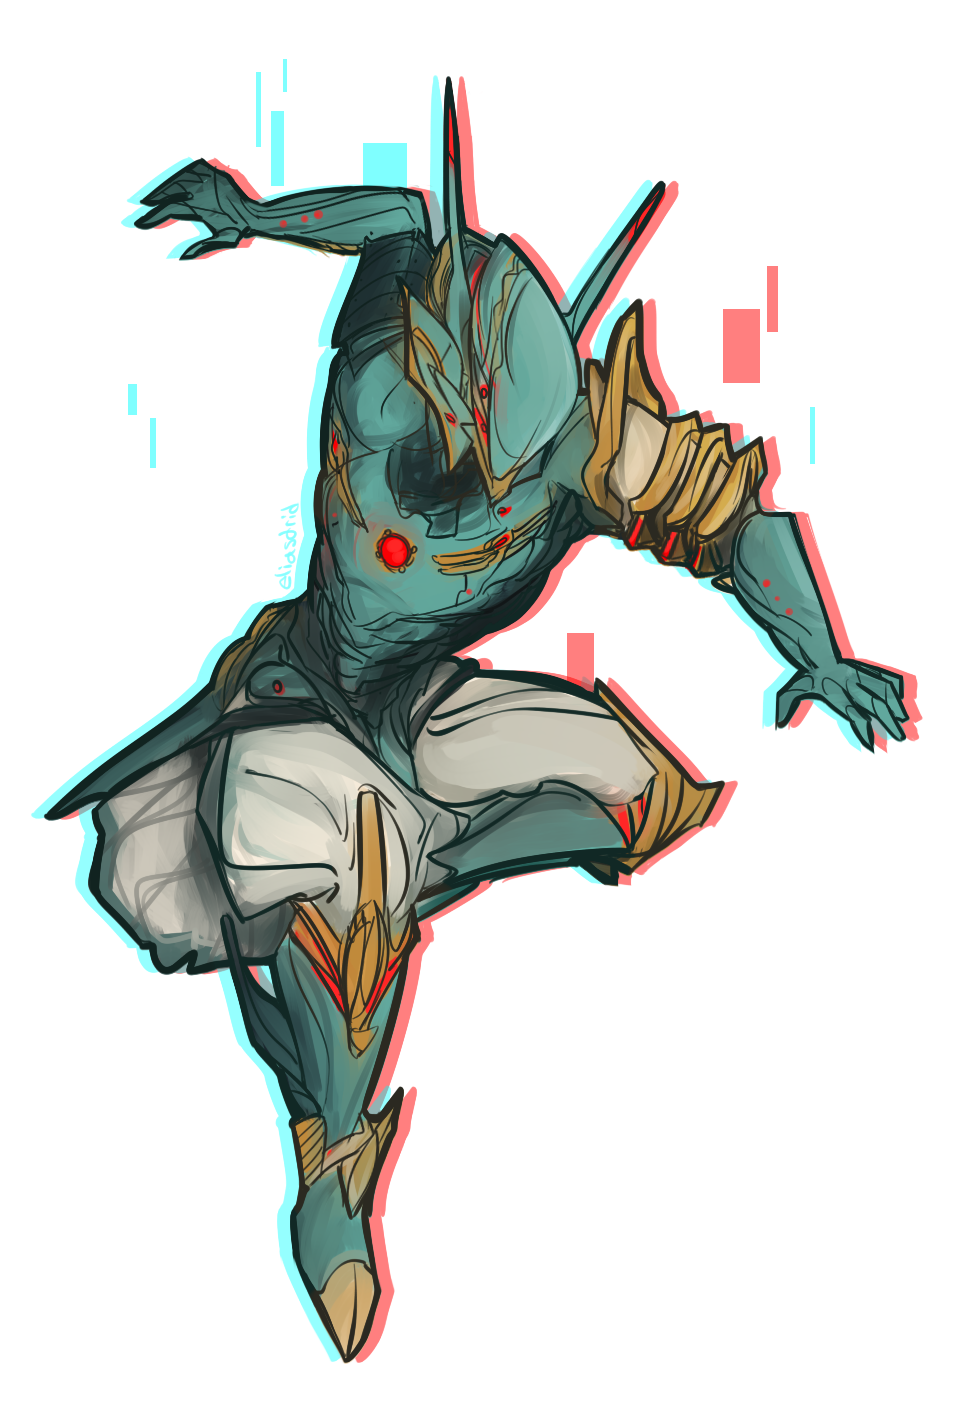 Warframe drawing prime. Catch me if you